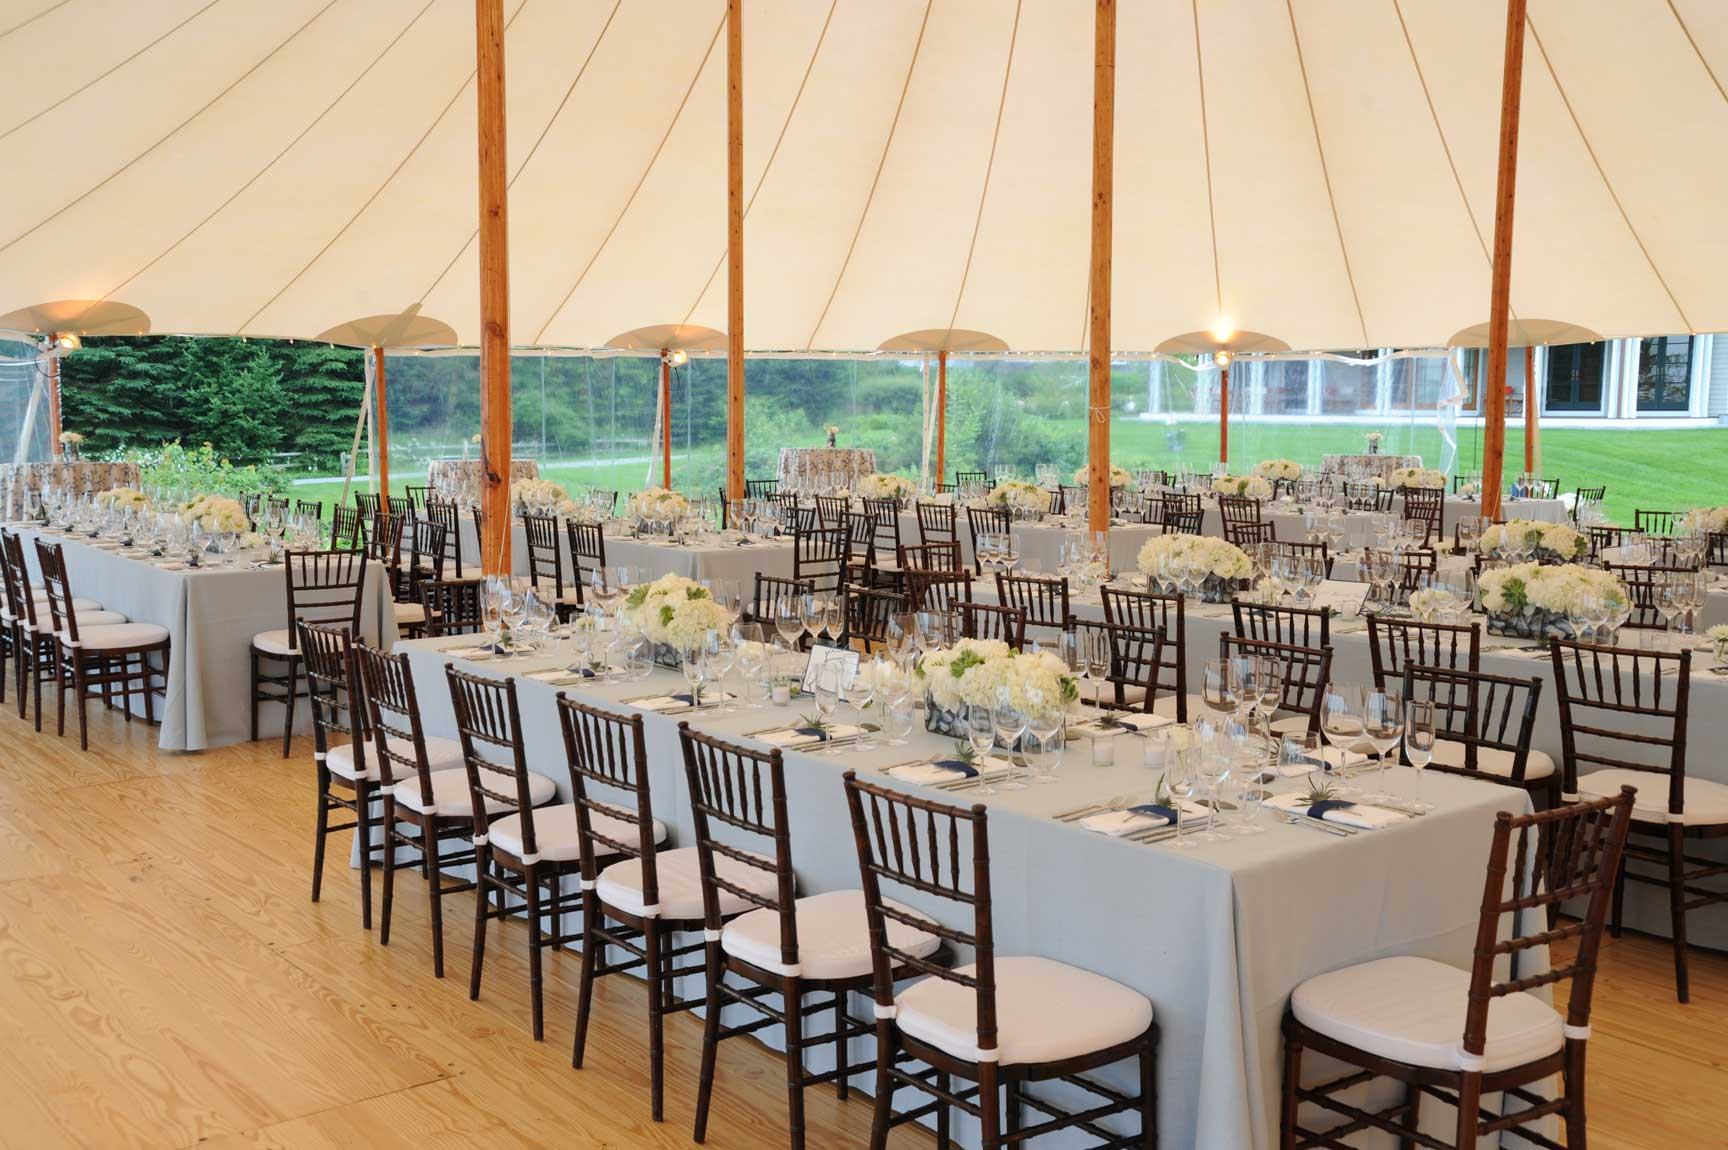 Prouts Neck wedding - White tablescapes and a grandiose tent create a striking backdrop for this Cape Elizabeth wedding. www.churchillcaterers.com